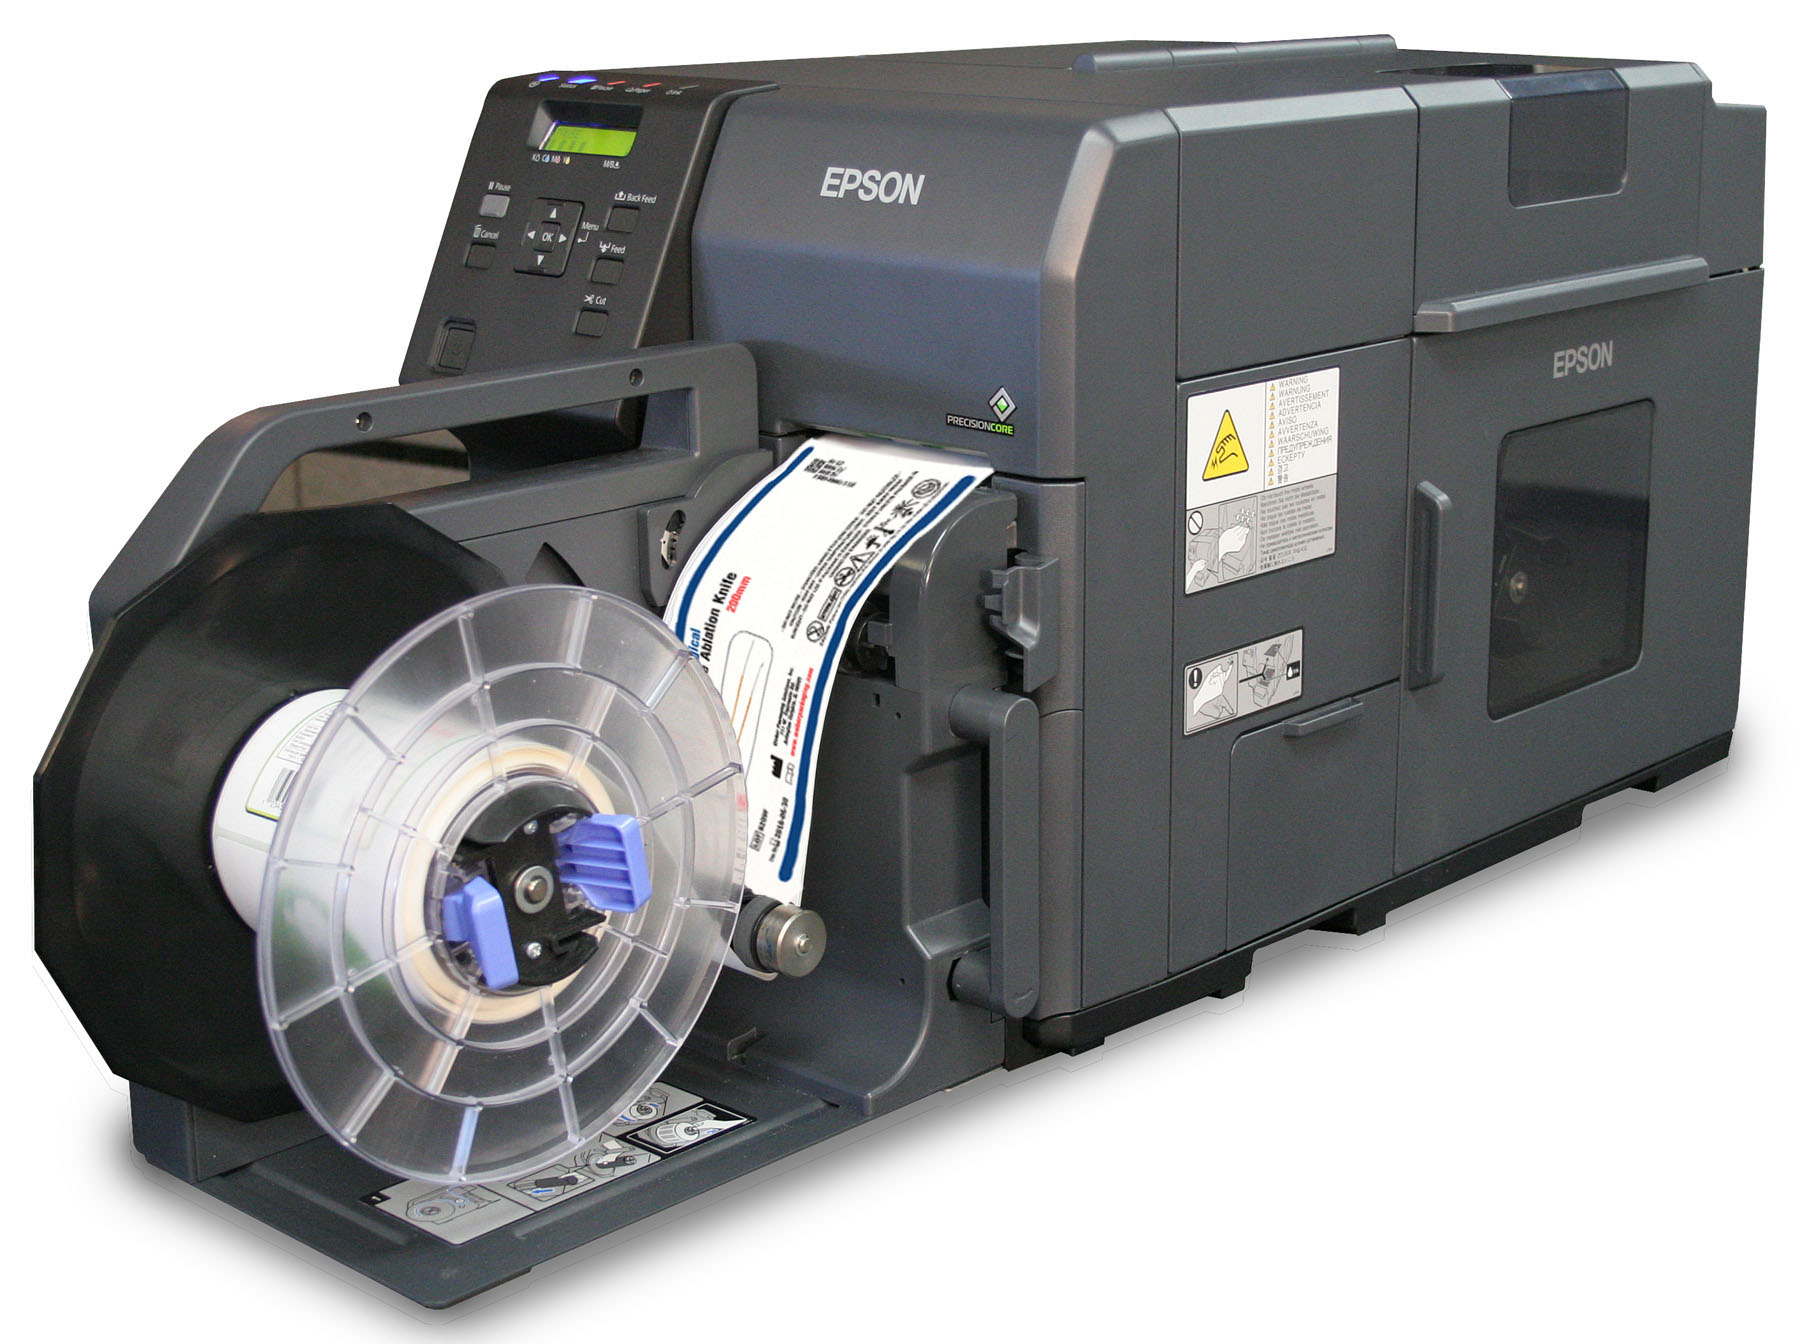 Epson C7500 high speed label printer